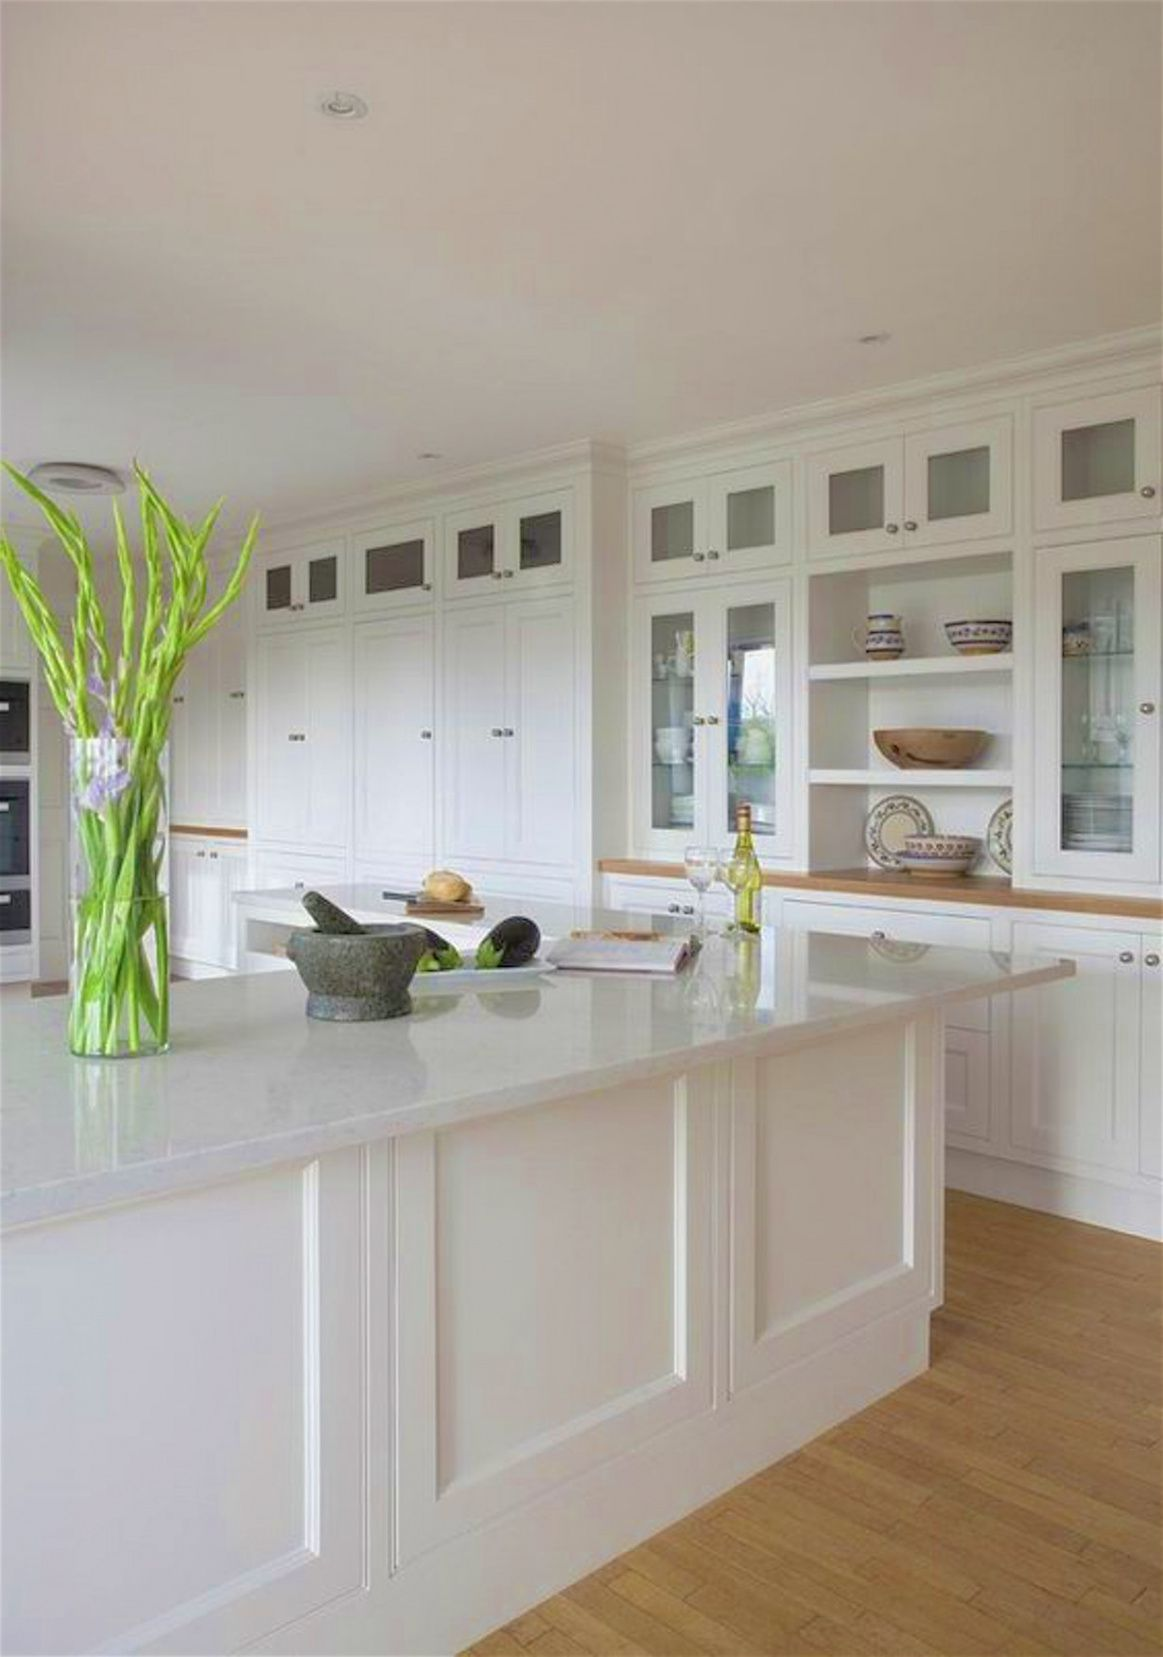 Kitchen Counter Options Cheap Backsplash Ideas 27 Countertop To Make Your Stand Out We Have Actually Pulled Together All Sorts Of Include In Great Layout